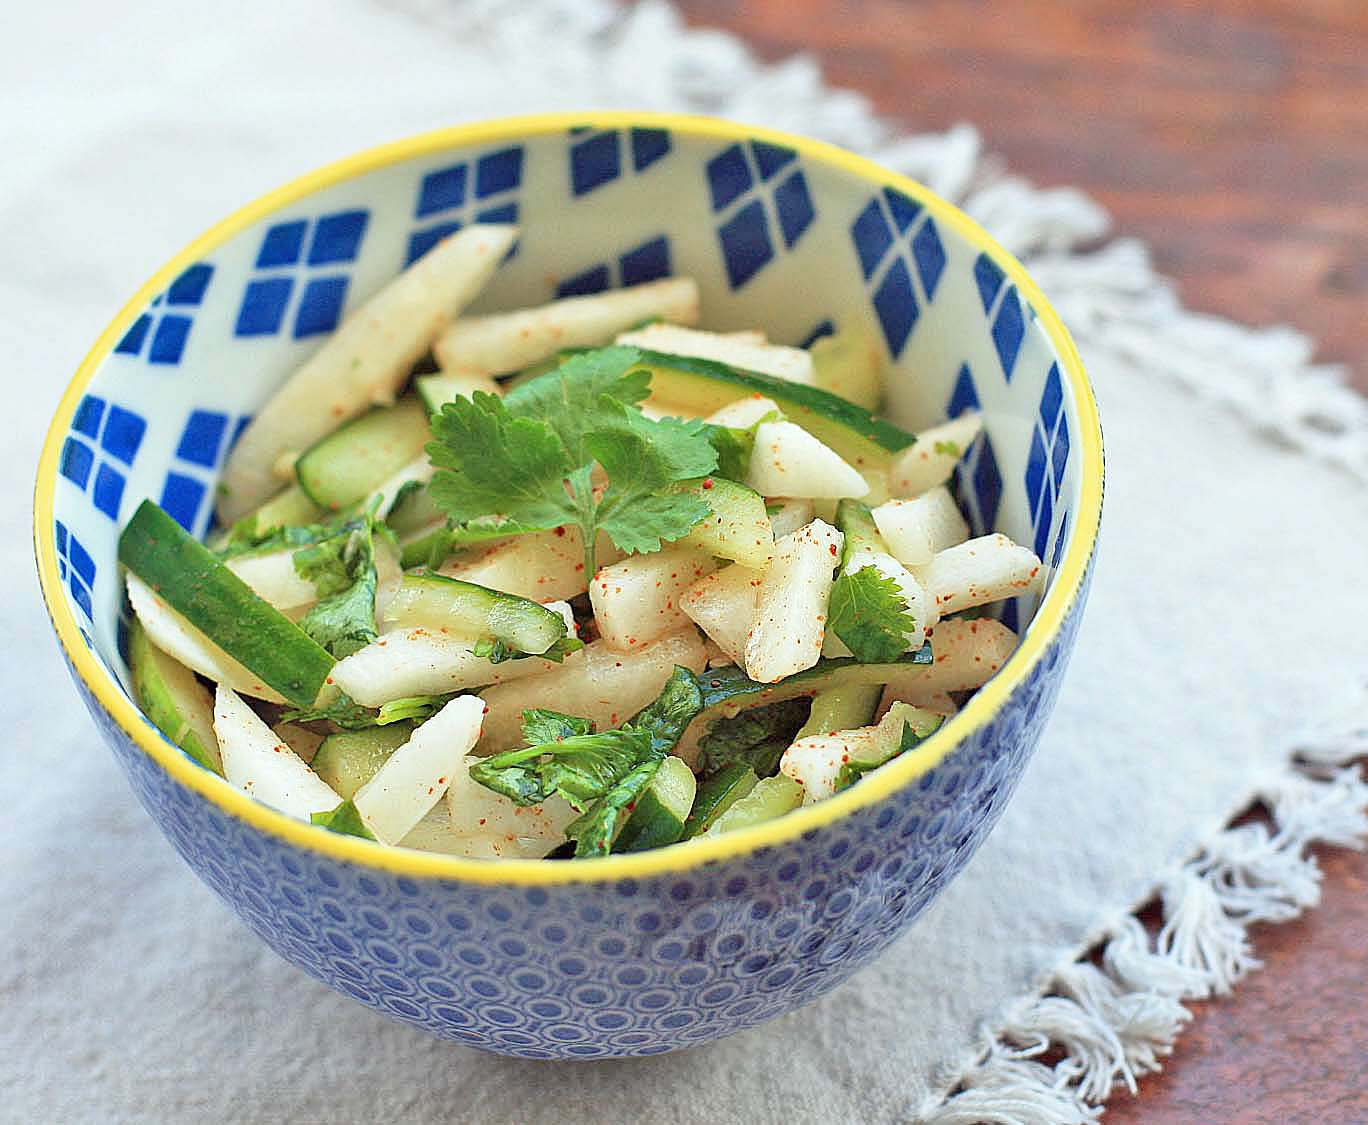 how to prepare jicama for salad